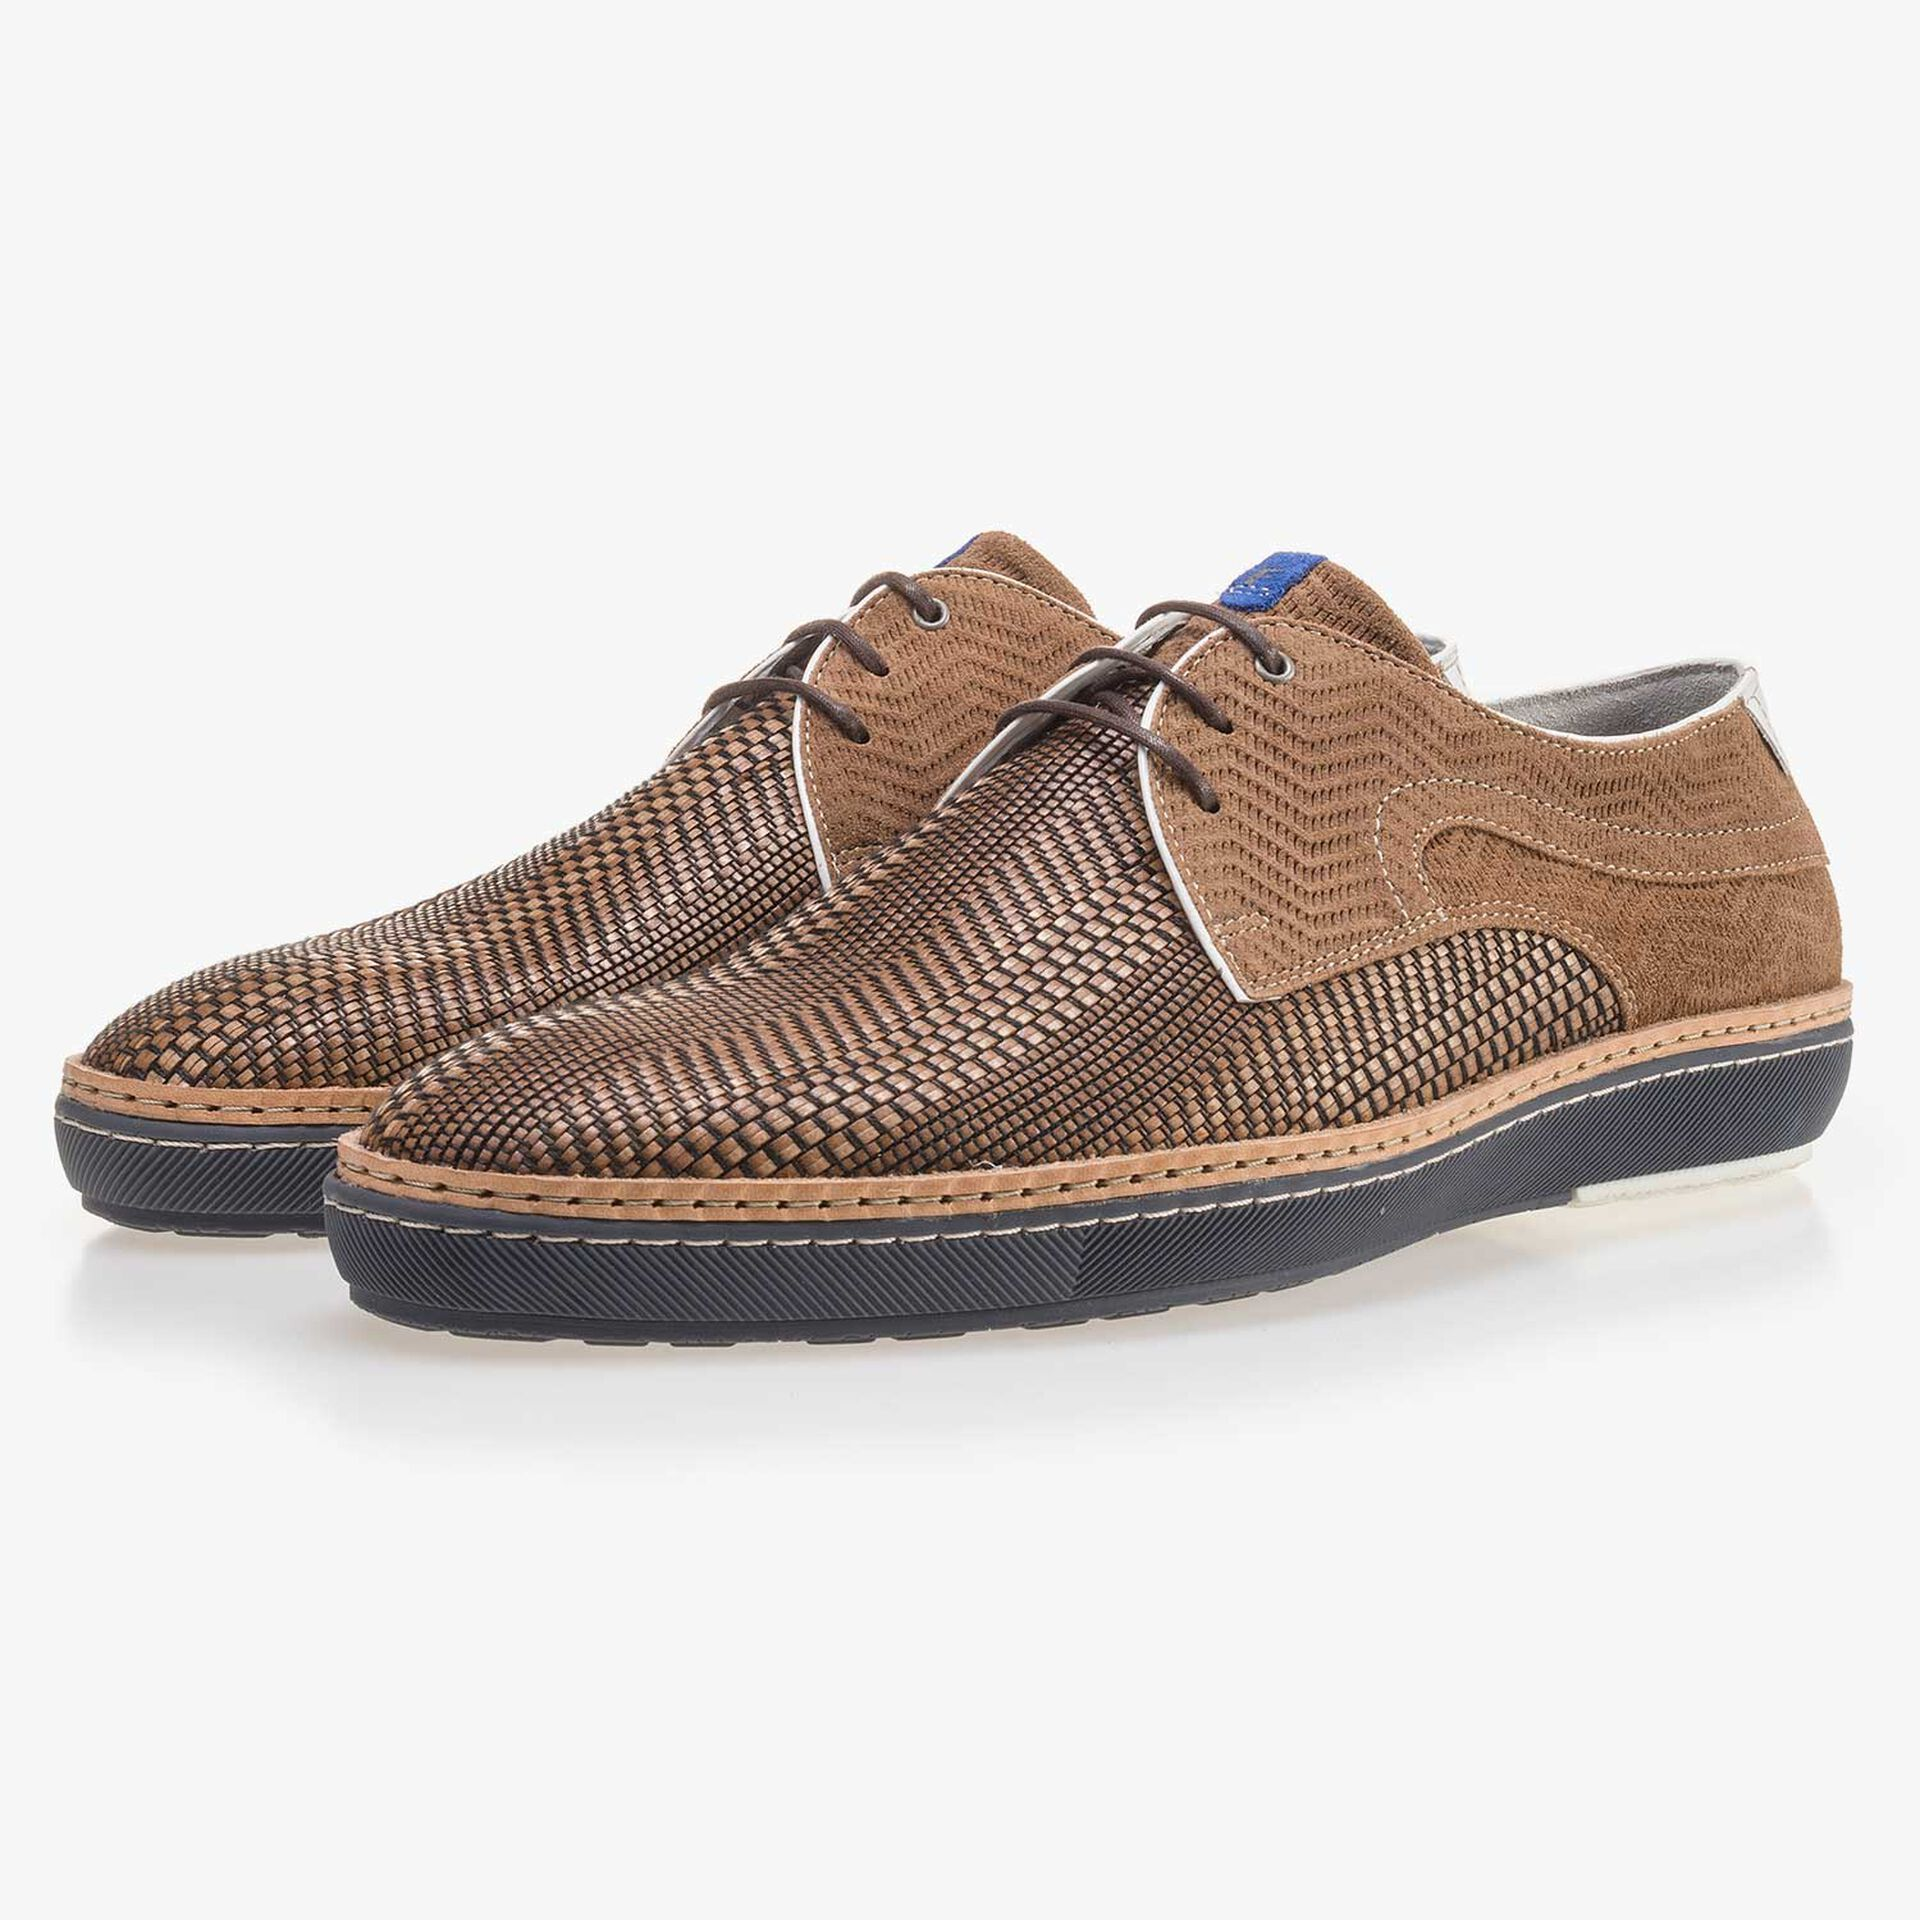 Cognac-coloured lace shoe made of braided leather